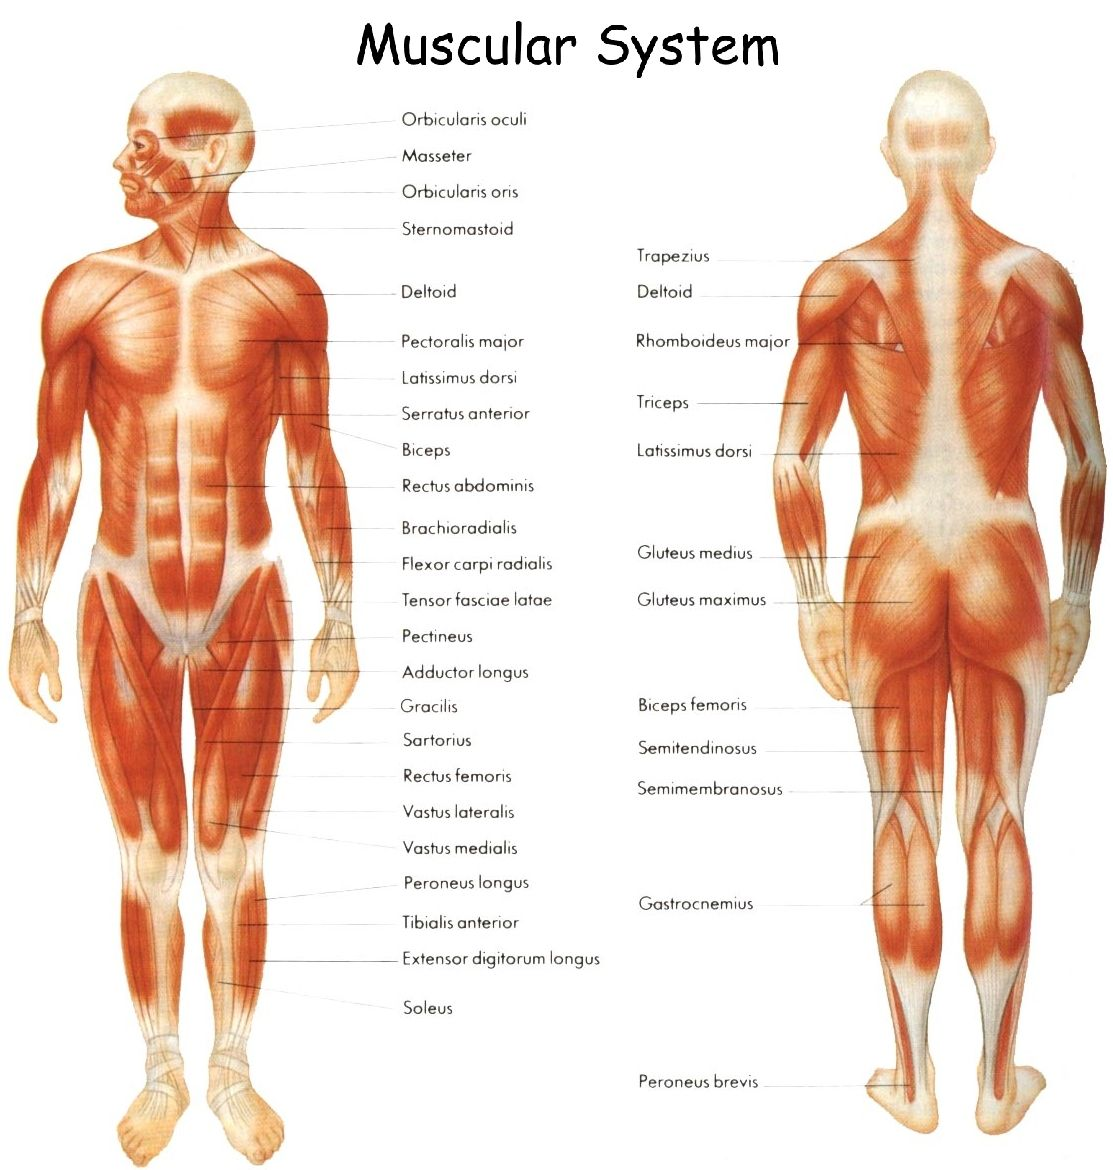 muscular system | body parts affected by autoimmune diseases, Muscles